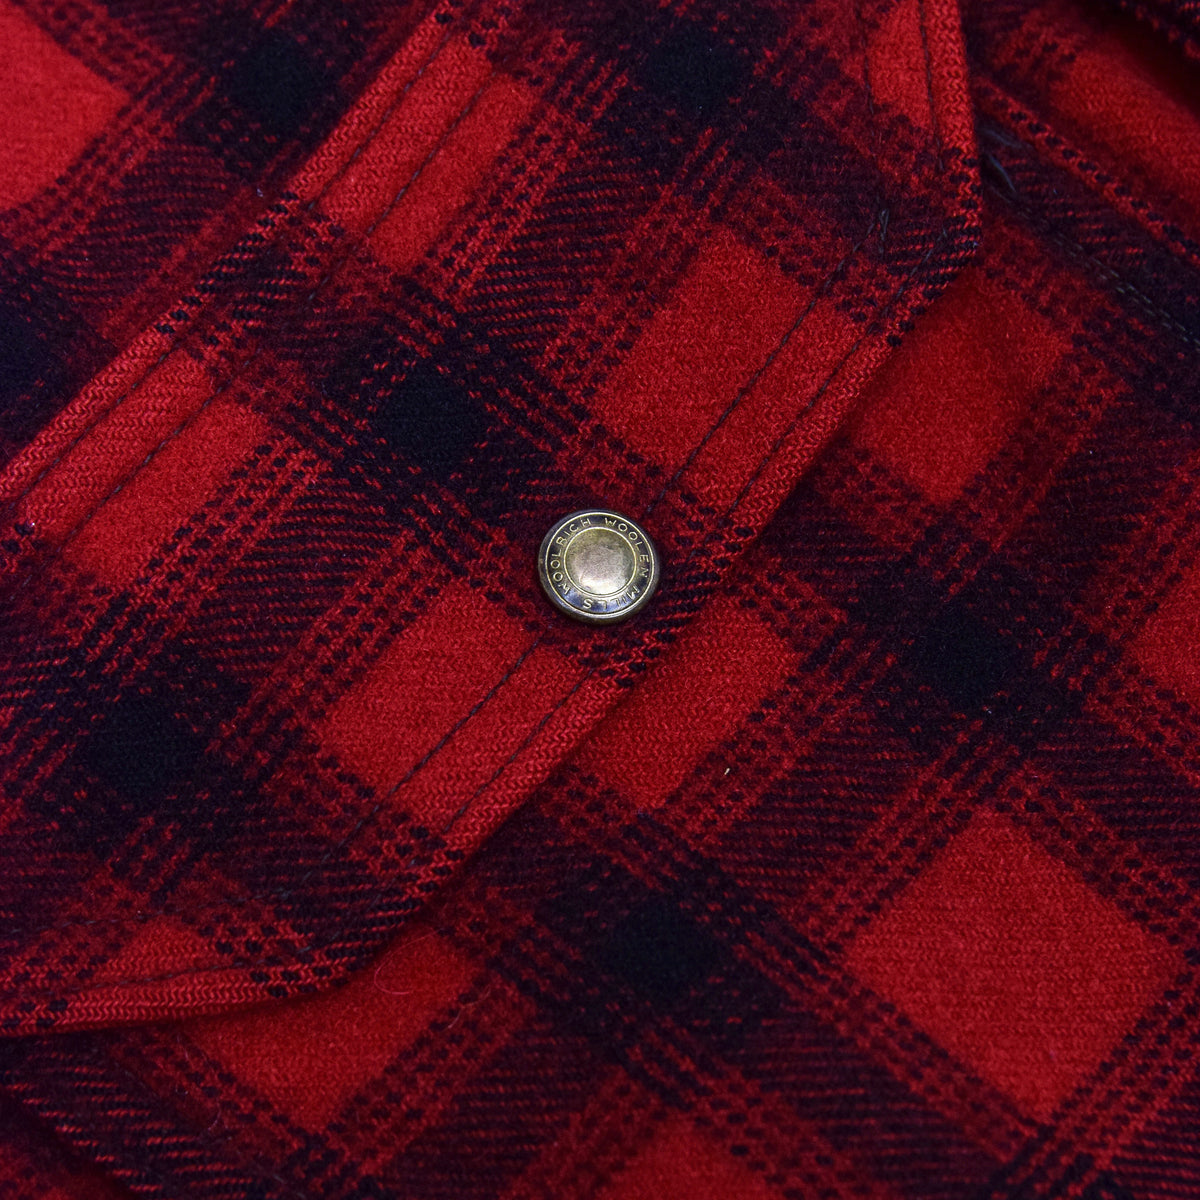 Vintage 70s Woolrich Woolen Mills Buffalo Plaid Mackinaw Hunting Jacket M button detail